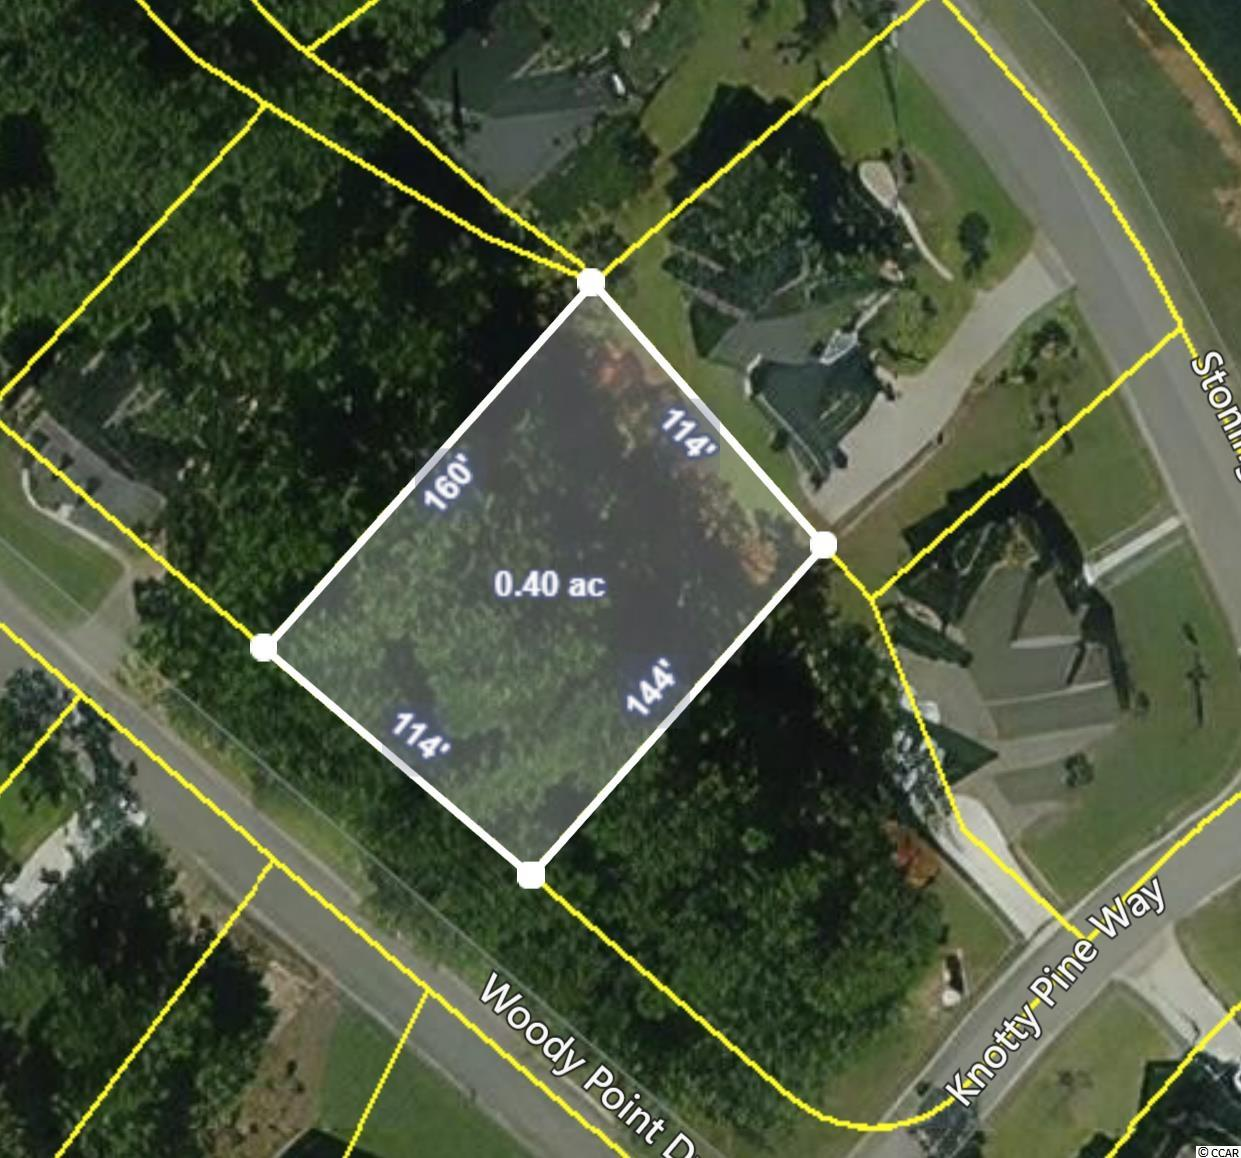 Lot 71 Collins Creek Landing. Build in your own time frame with your own builder in this upscale custom home community. Amenities include boat launch with day dock, pool & kiddie pool, clubhouse, nature walk, playground area.  Down the road from Wacca wache marina.